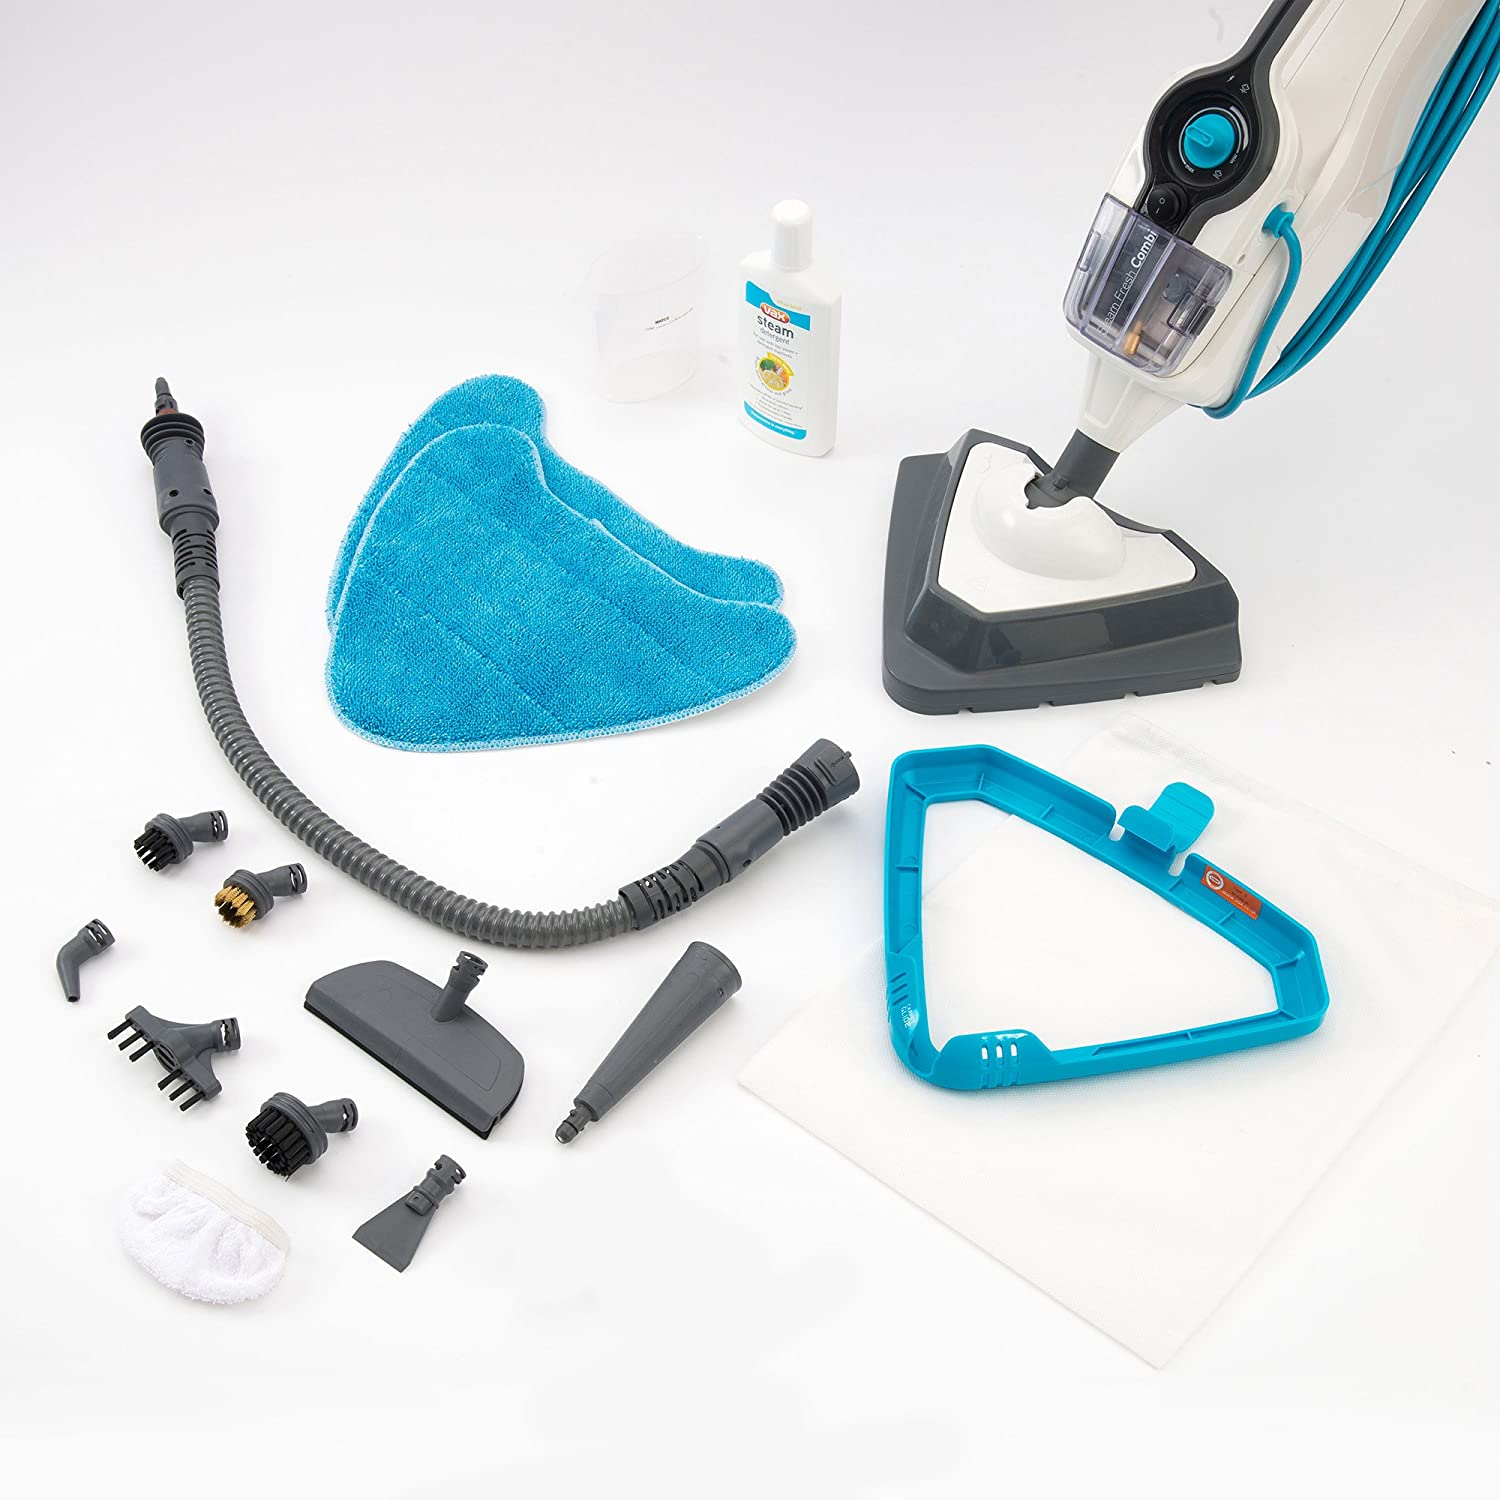 Vax steam mops work very well and are quite affordable.